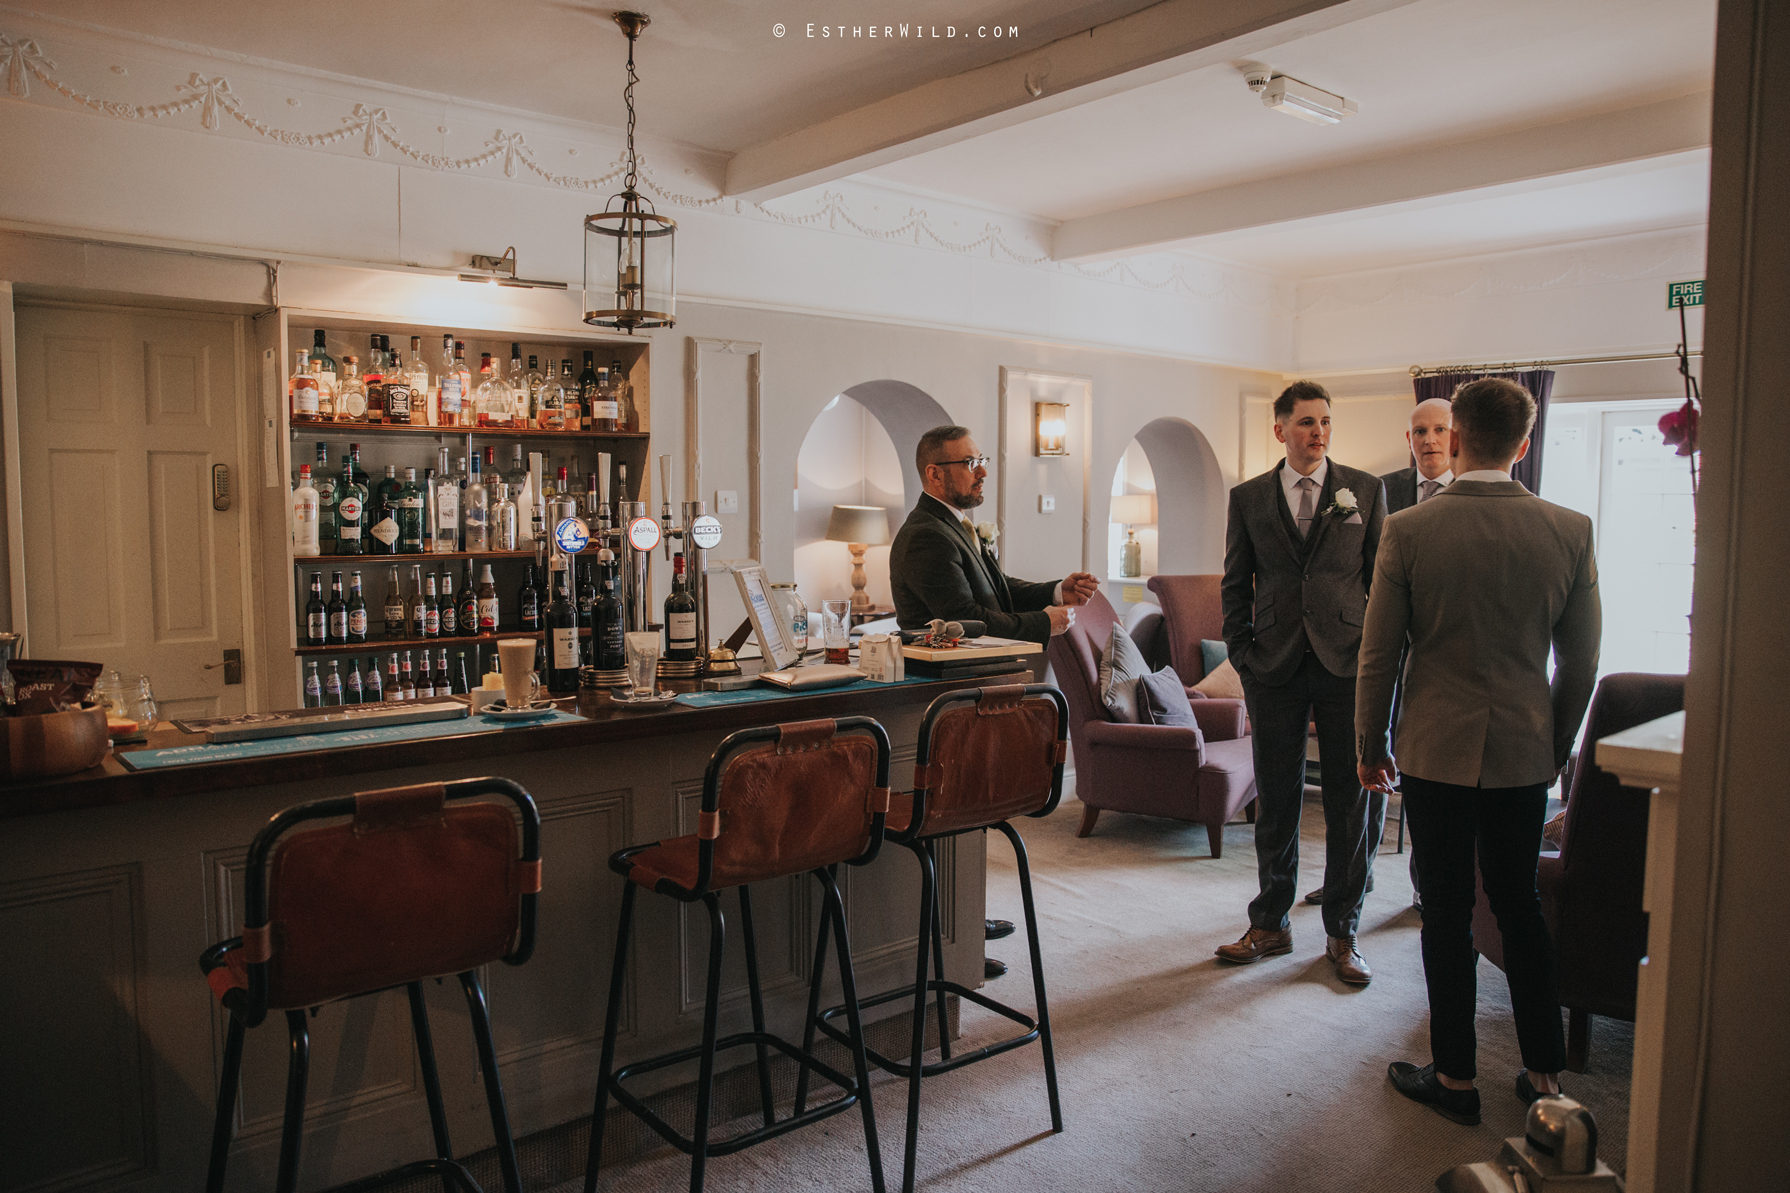 Norfolk_Mead_Hotel_Norwich_Wedding_Copyright_Esther_Wild_Photographer_IMG_0752.jpg